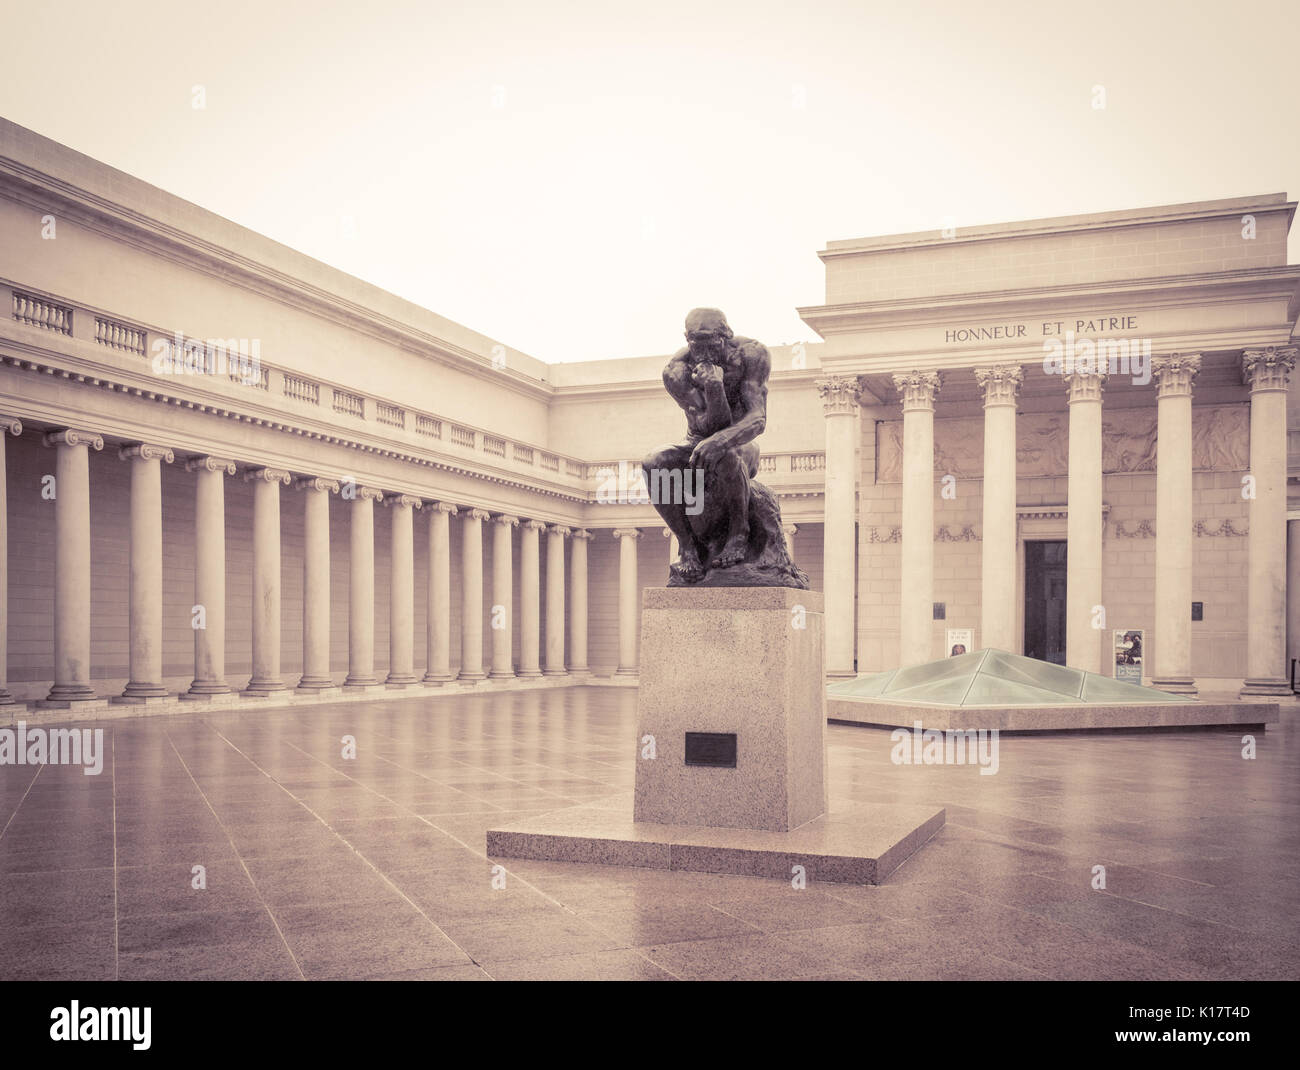 The Court of Honor, featuring a cast of the statue The Thinker, by Auguste Rodin at The Legion of Honor fine art museum in San Francisco. - Stock Image